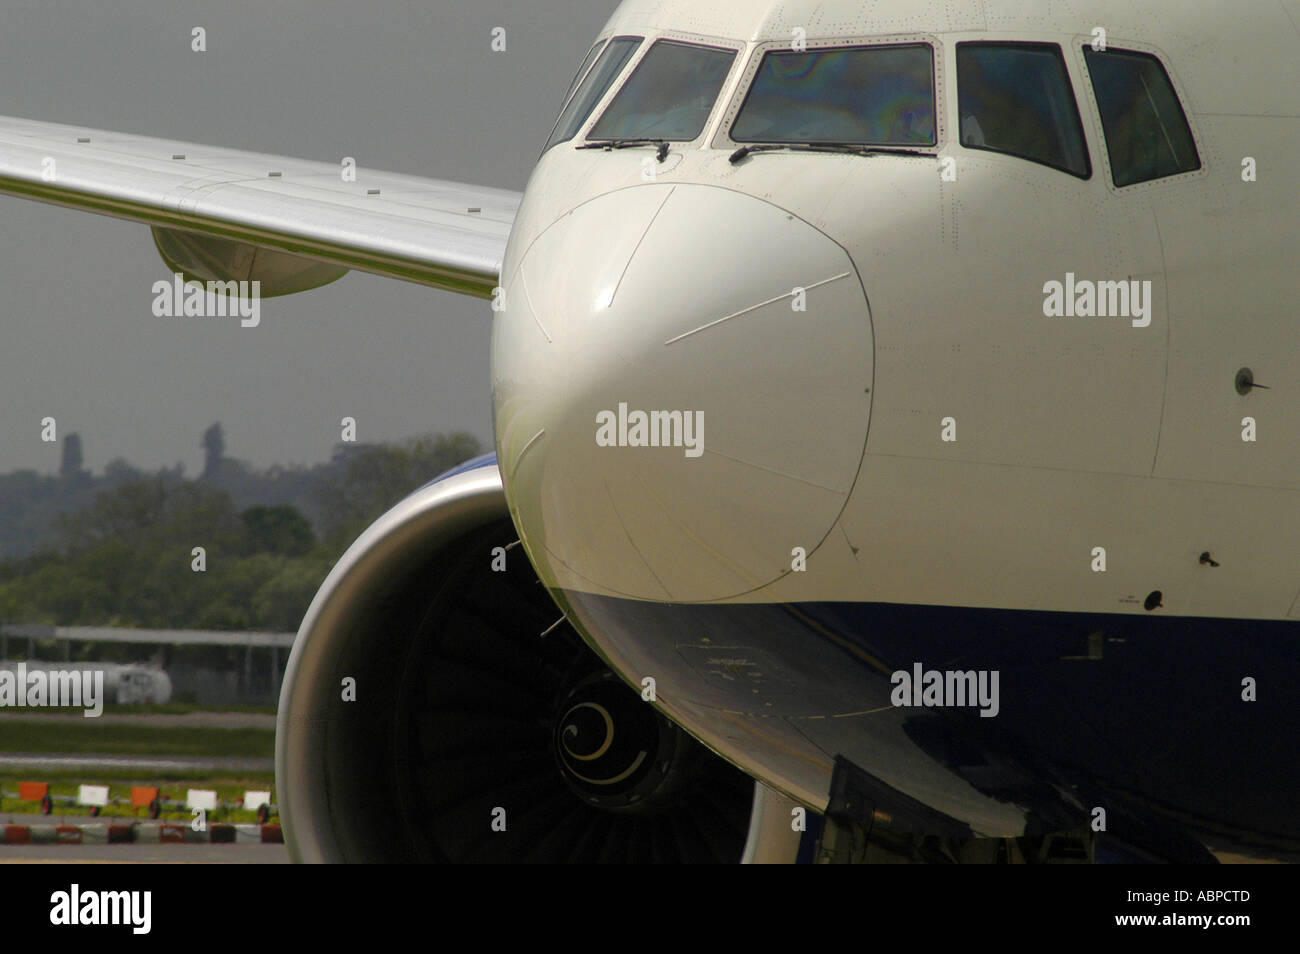 A British Airways airliner taxiing on the runway at Heathrow Airport London Picture by Andrew Hasson May 18th 2006 - Stock Image